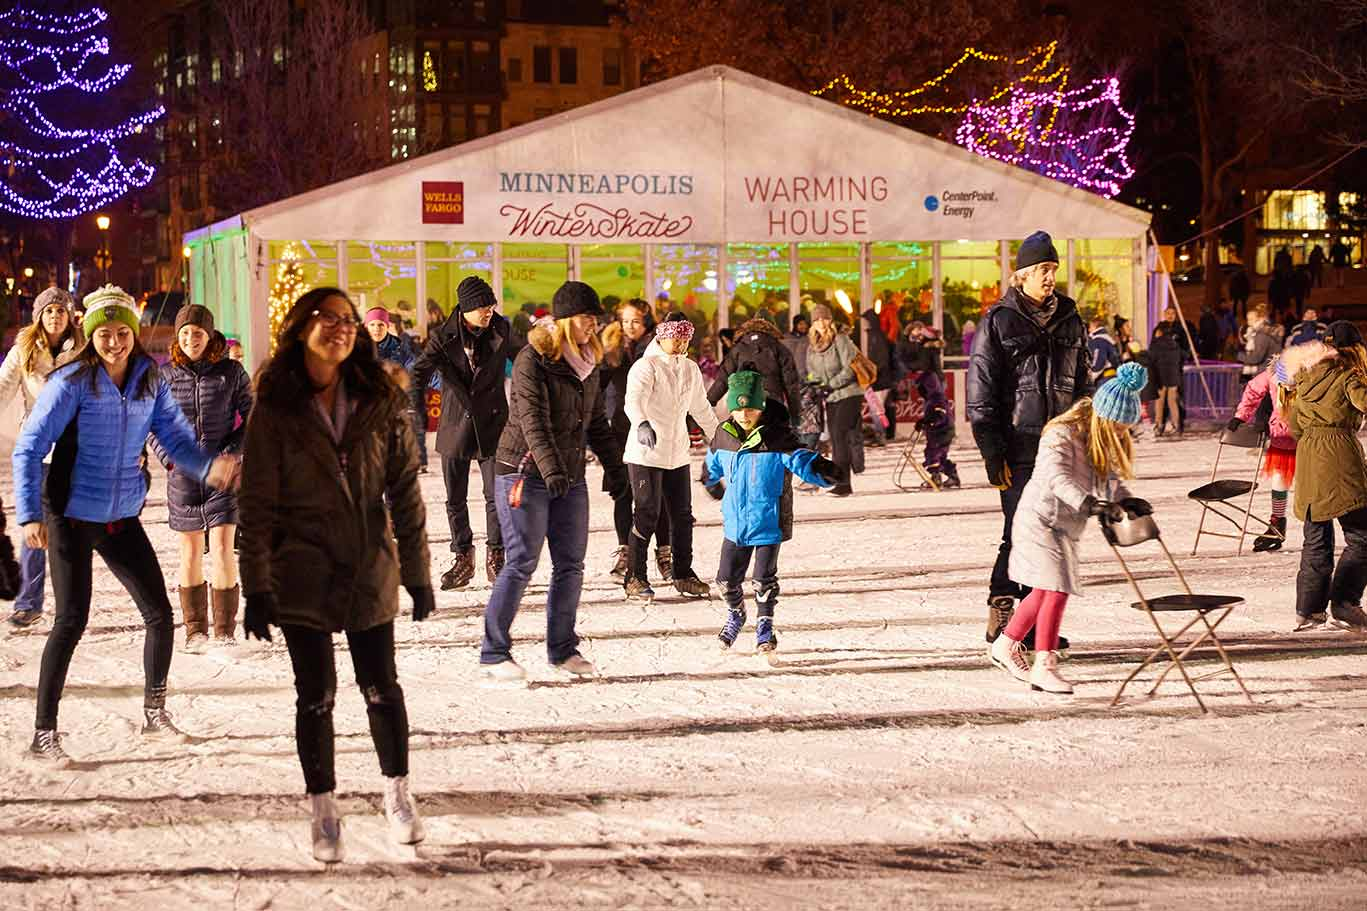 Minneapolis Events March 2020.Mpls Winterskate Mpls Downtown Council